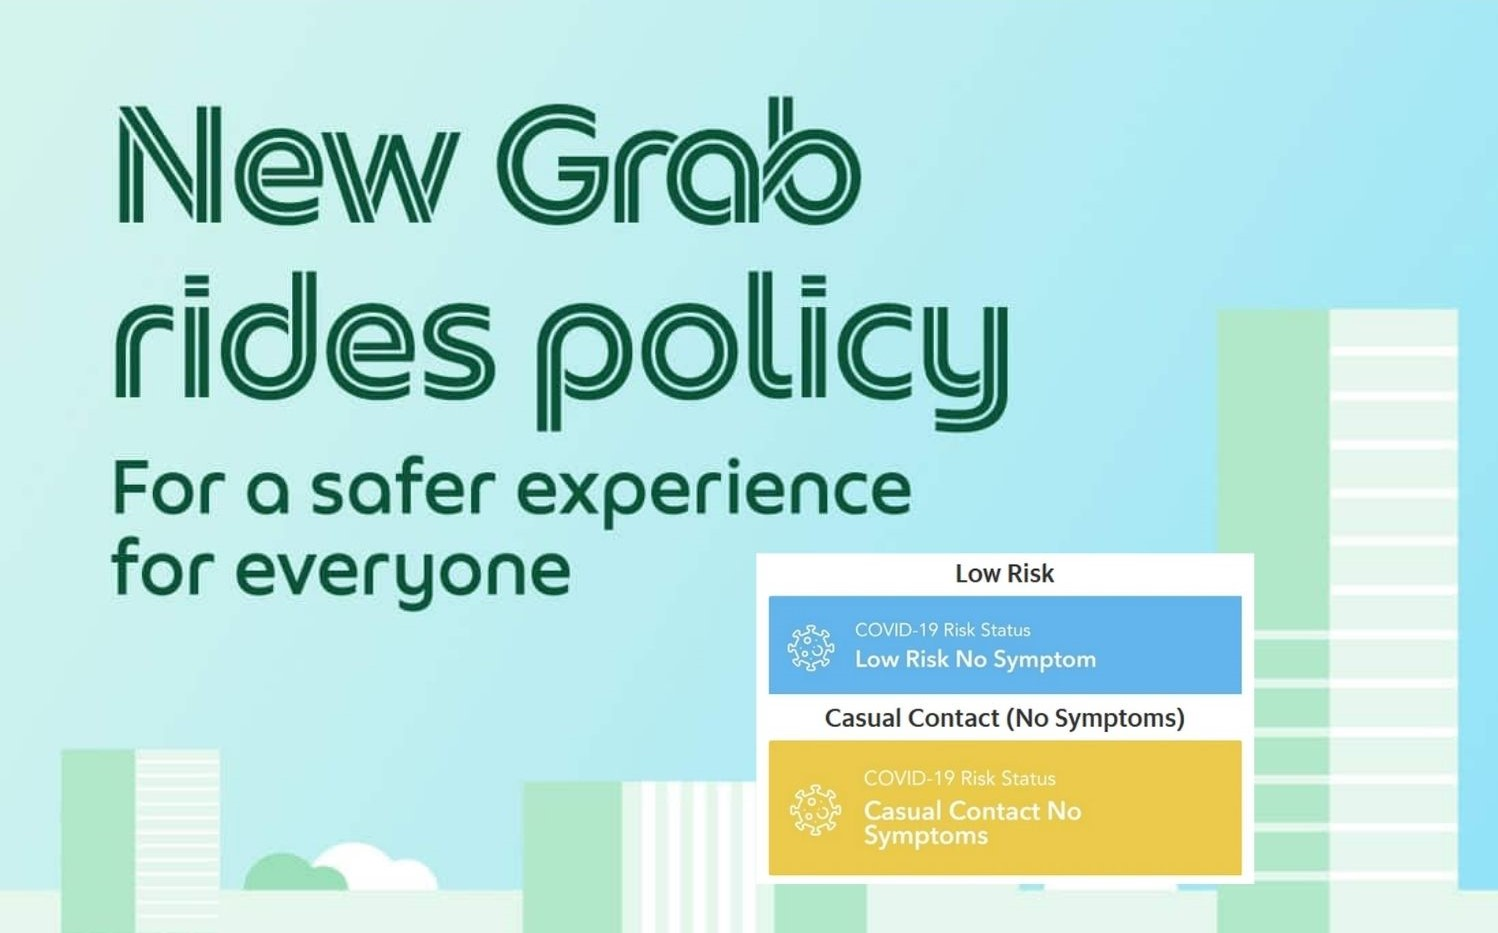 Grab To Deny Those With High Risk Status From Using Their E-Hailing Services